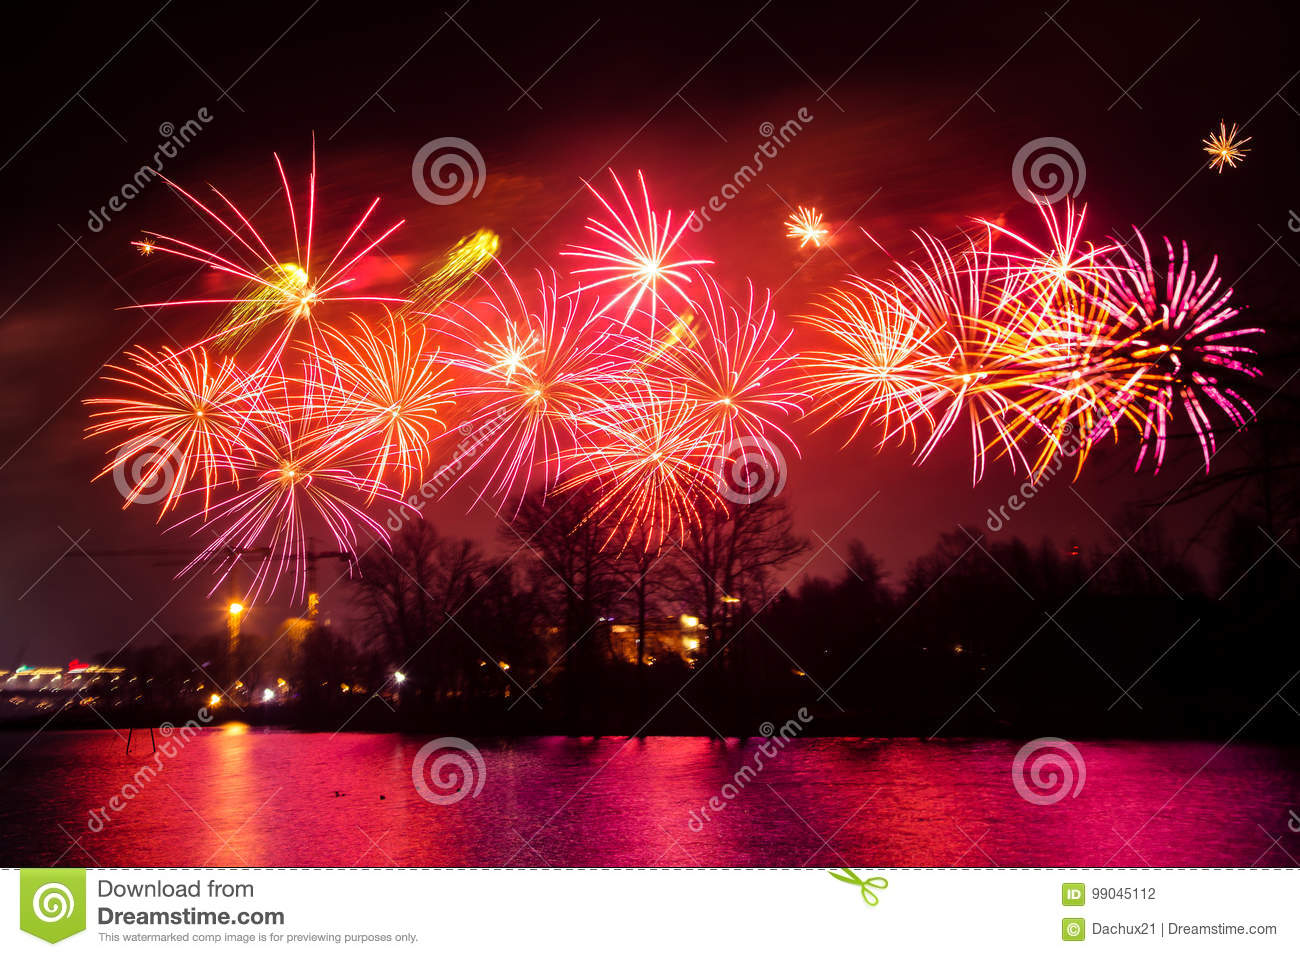 Abstract, Blurry, Bokeh-style Colorful Photo Of Fireworks ...